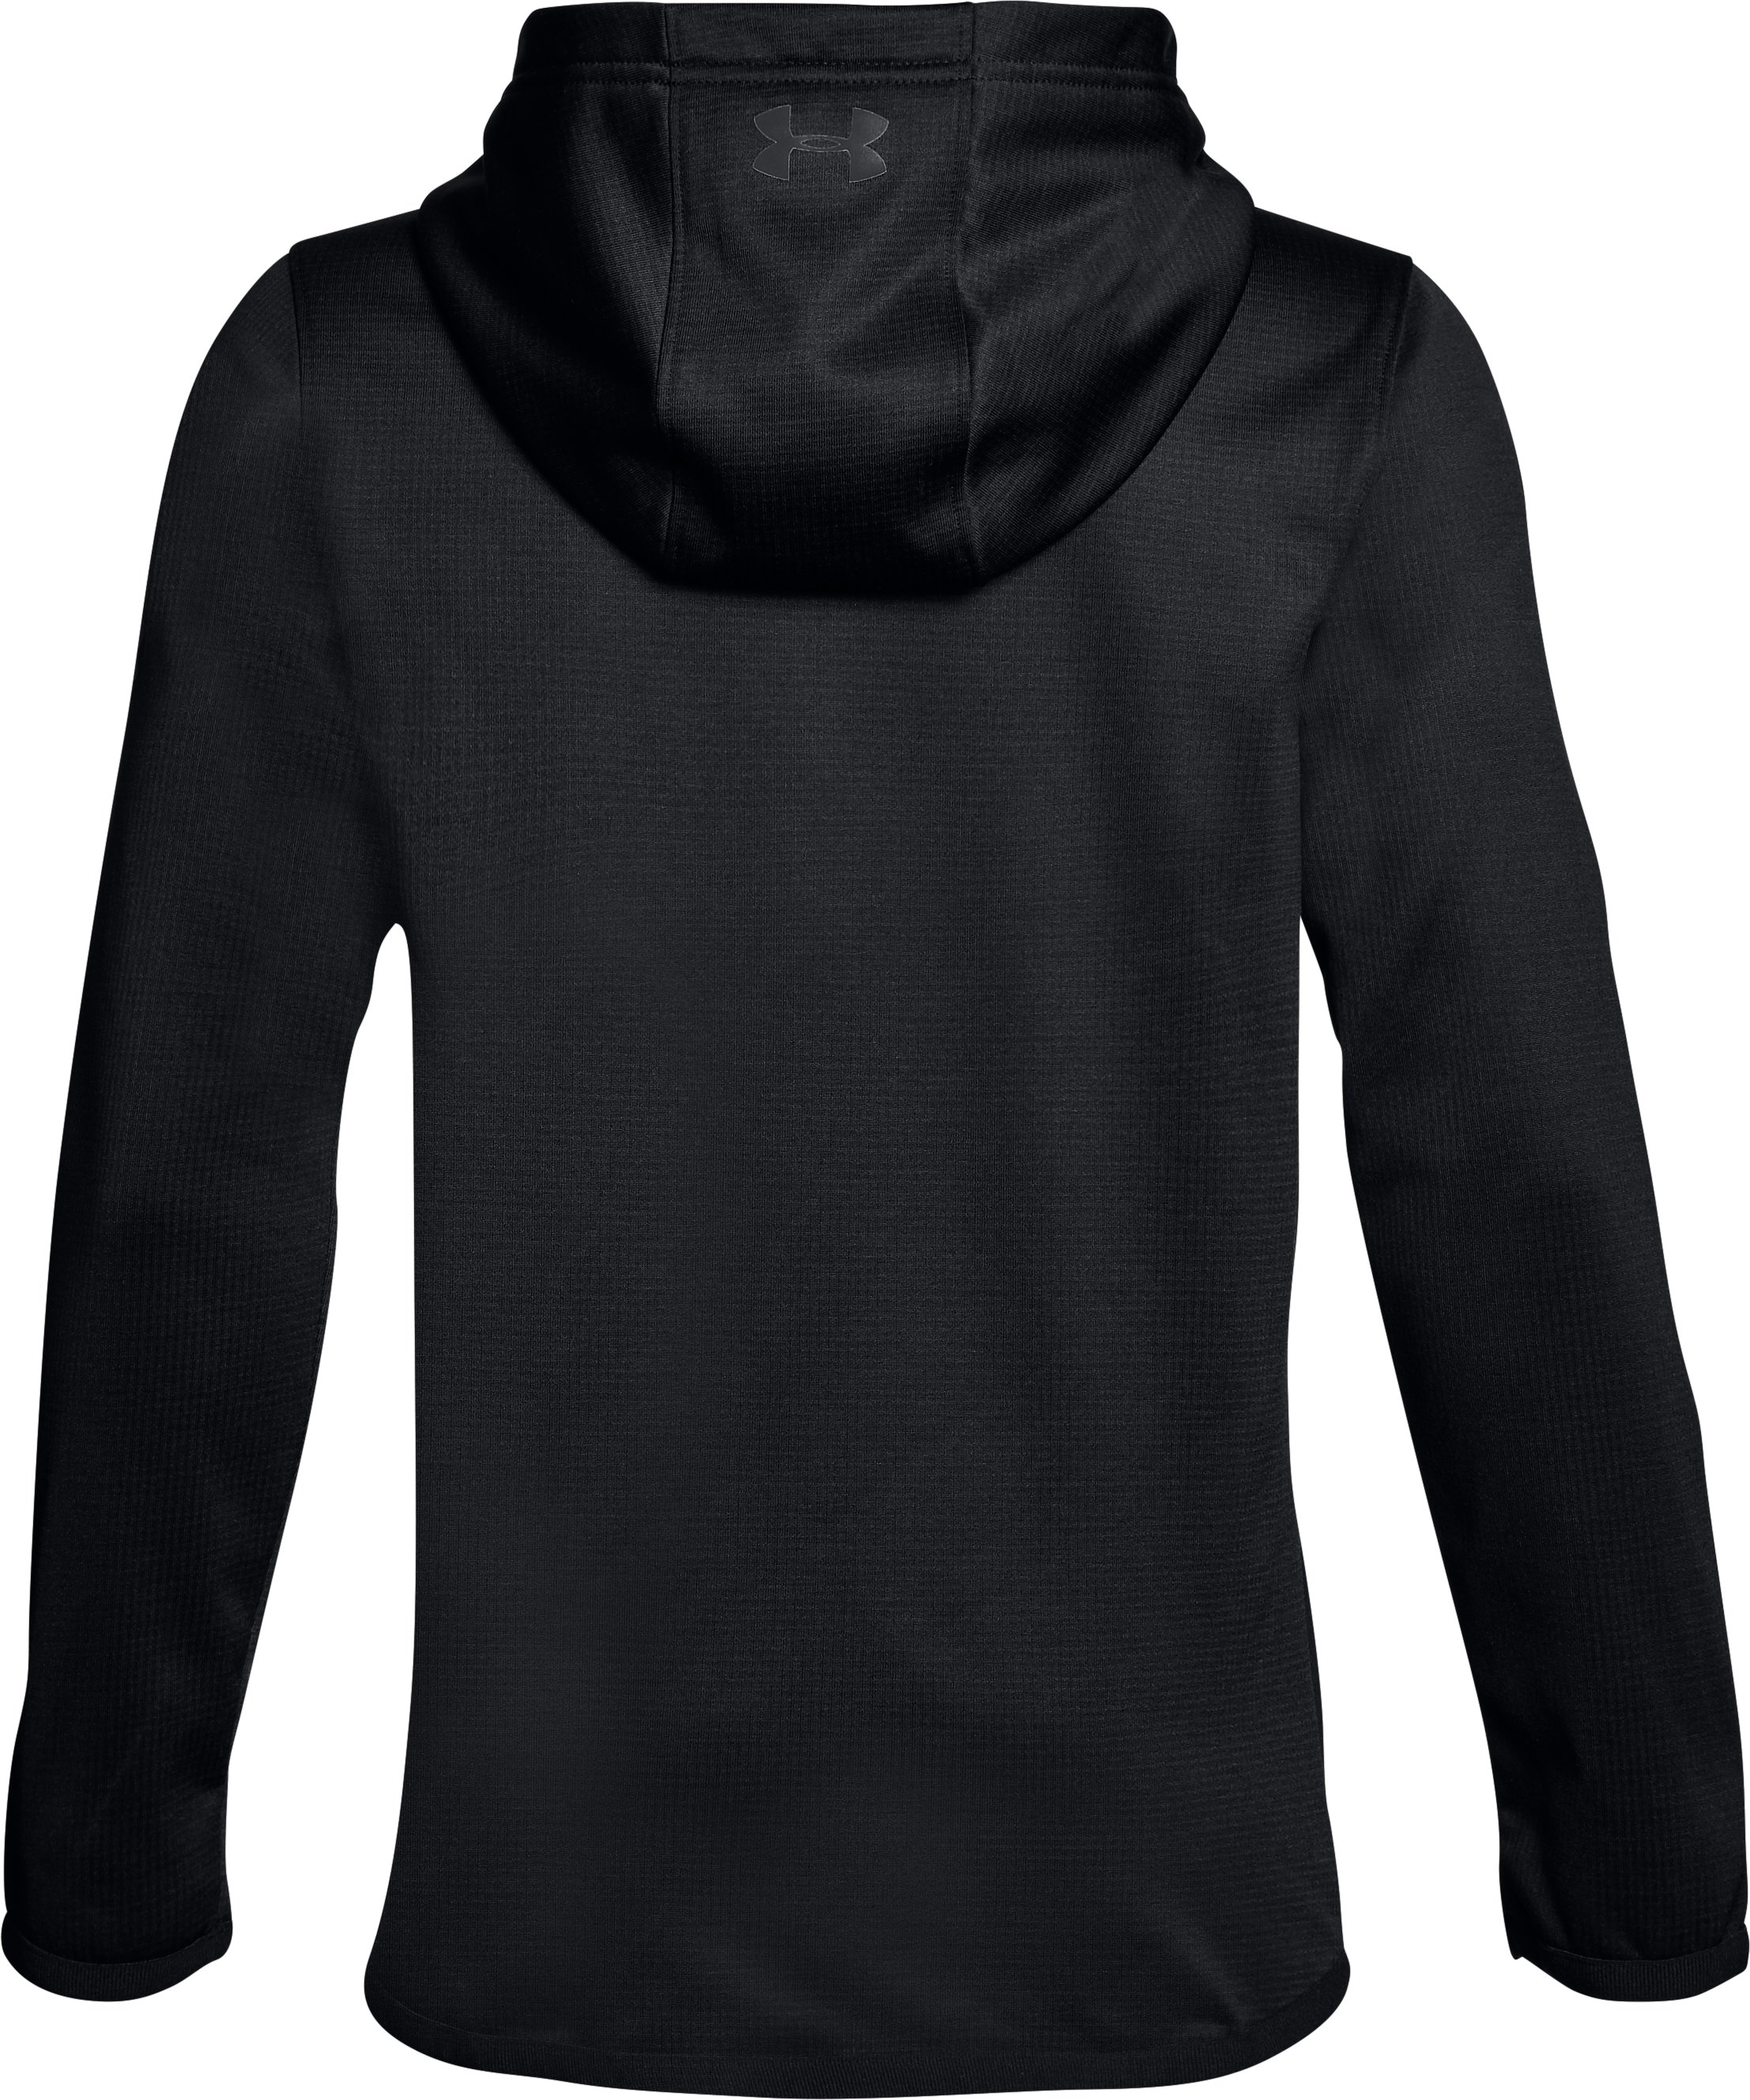 Boys' ColdGear® Reactor Hoodie, ANTHRACITE, undefined